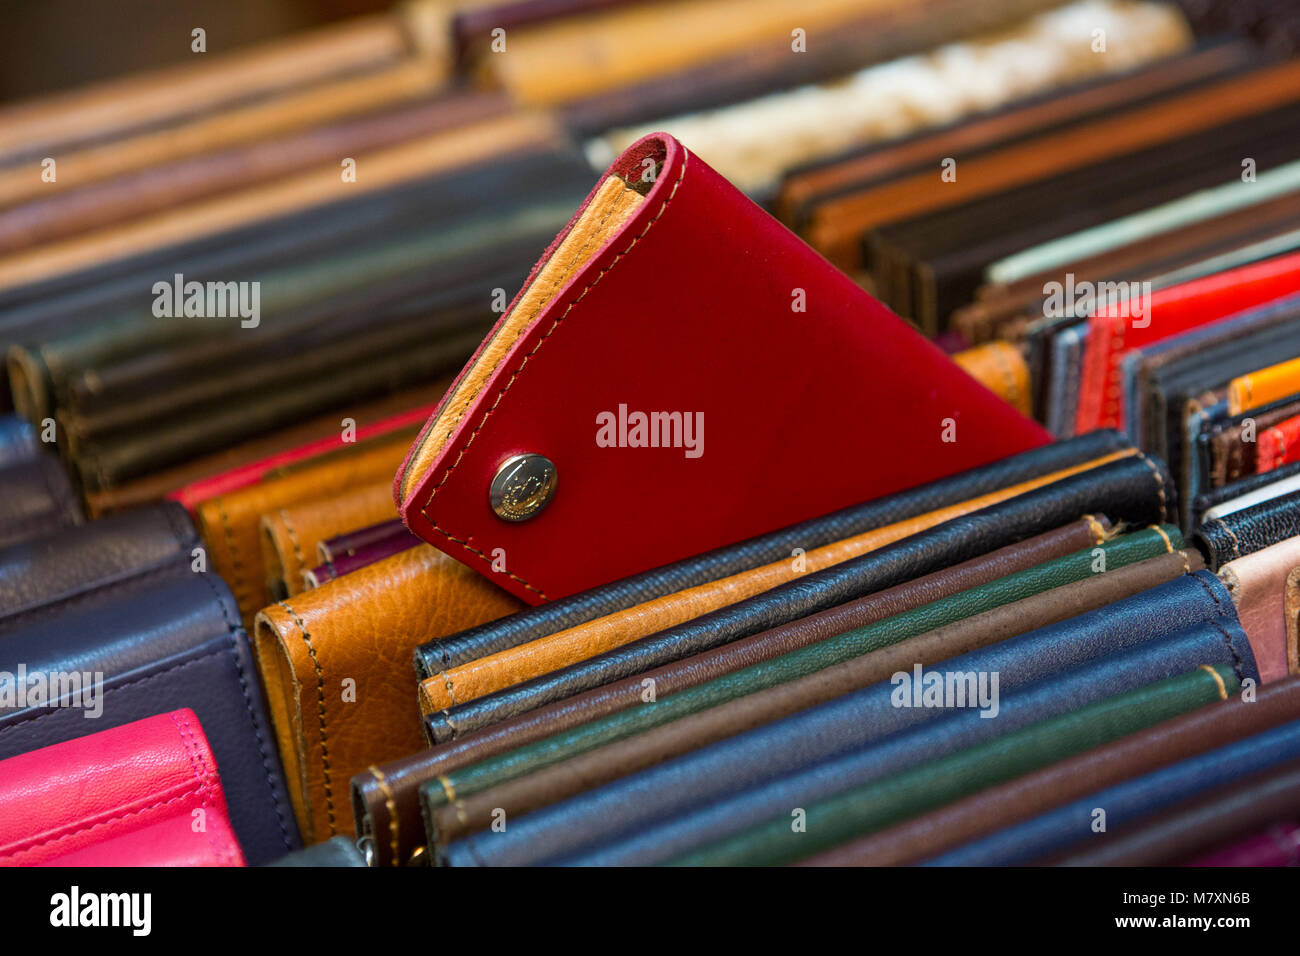 Selection of leather purses for sale. - Stock Image